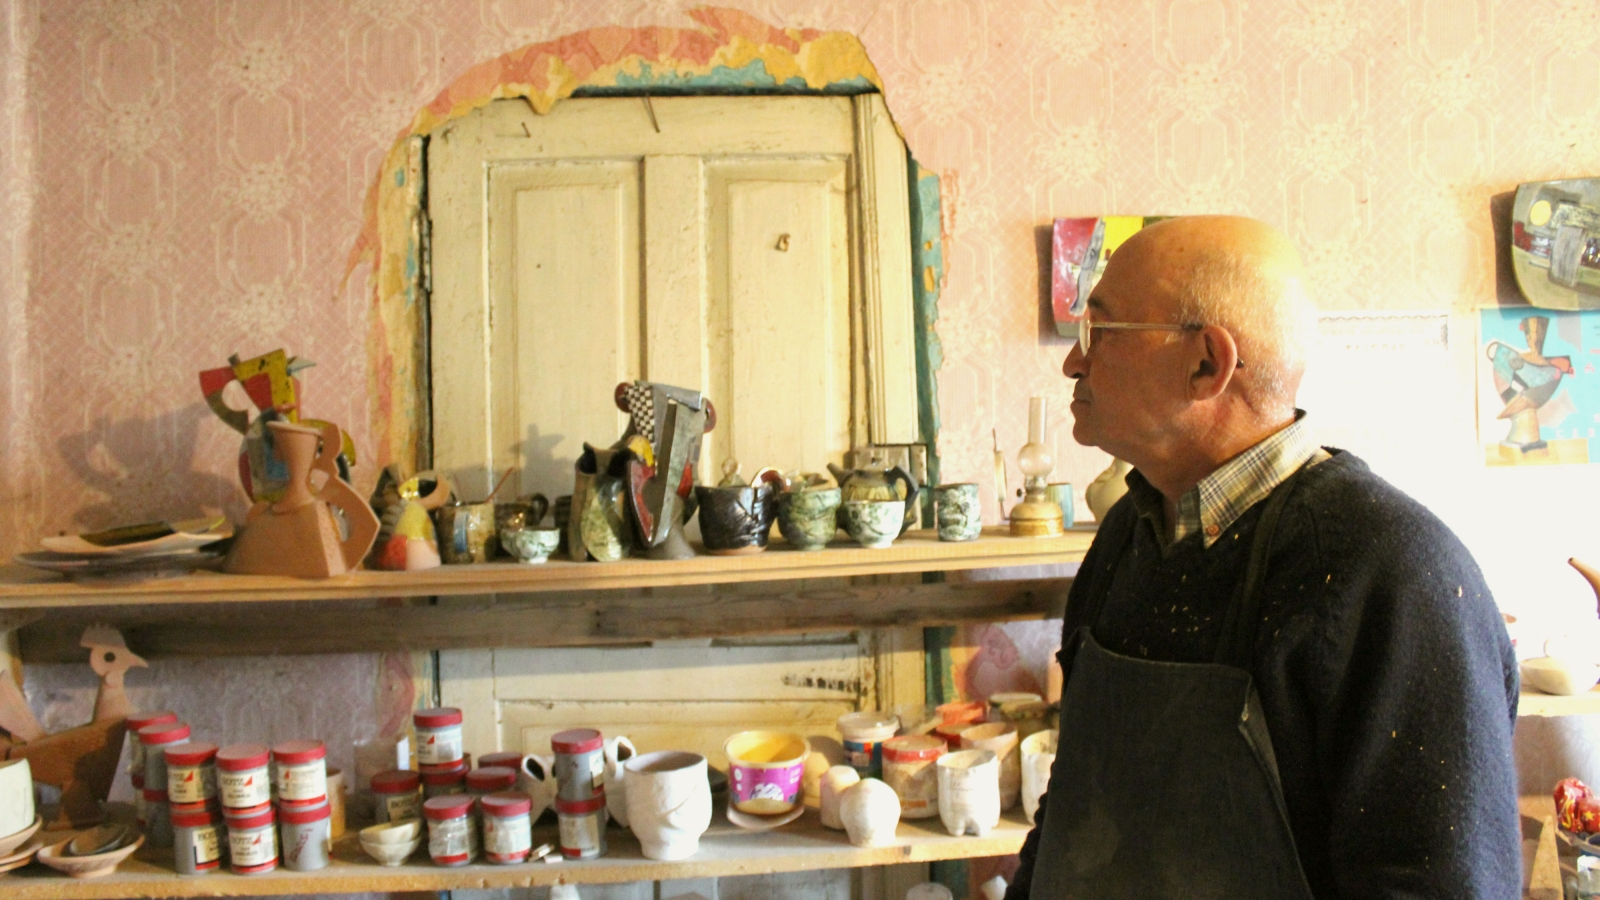 Otar Sharabidze looking at his ceramic works